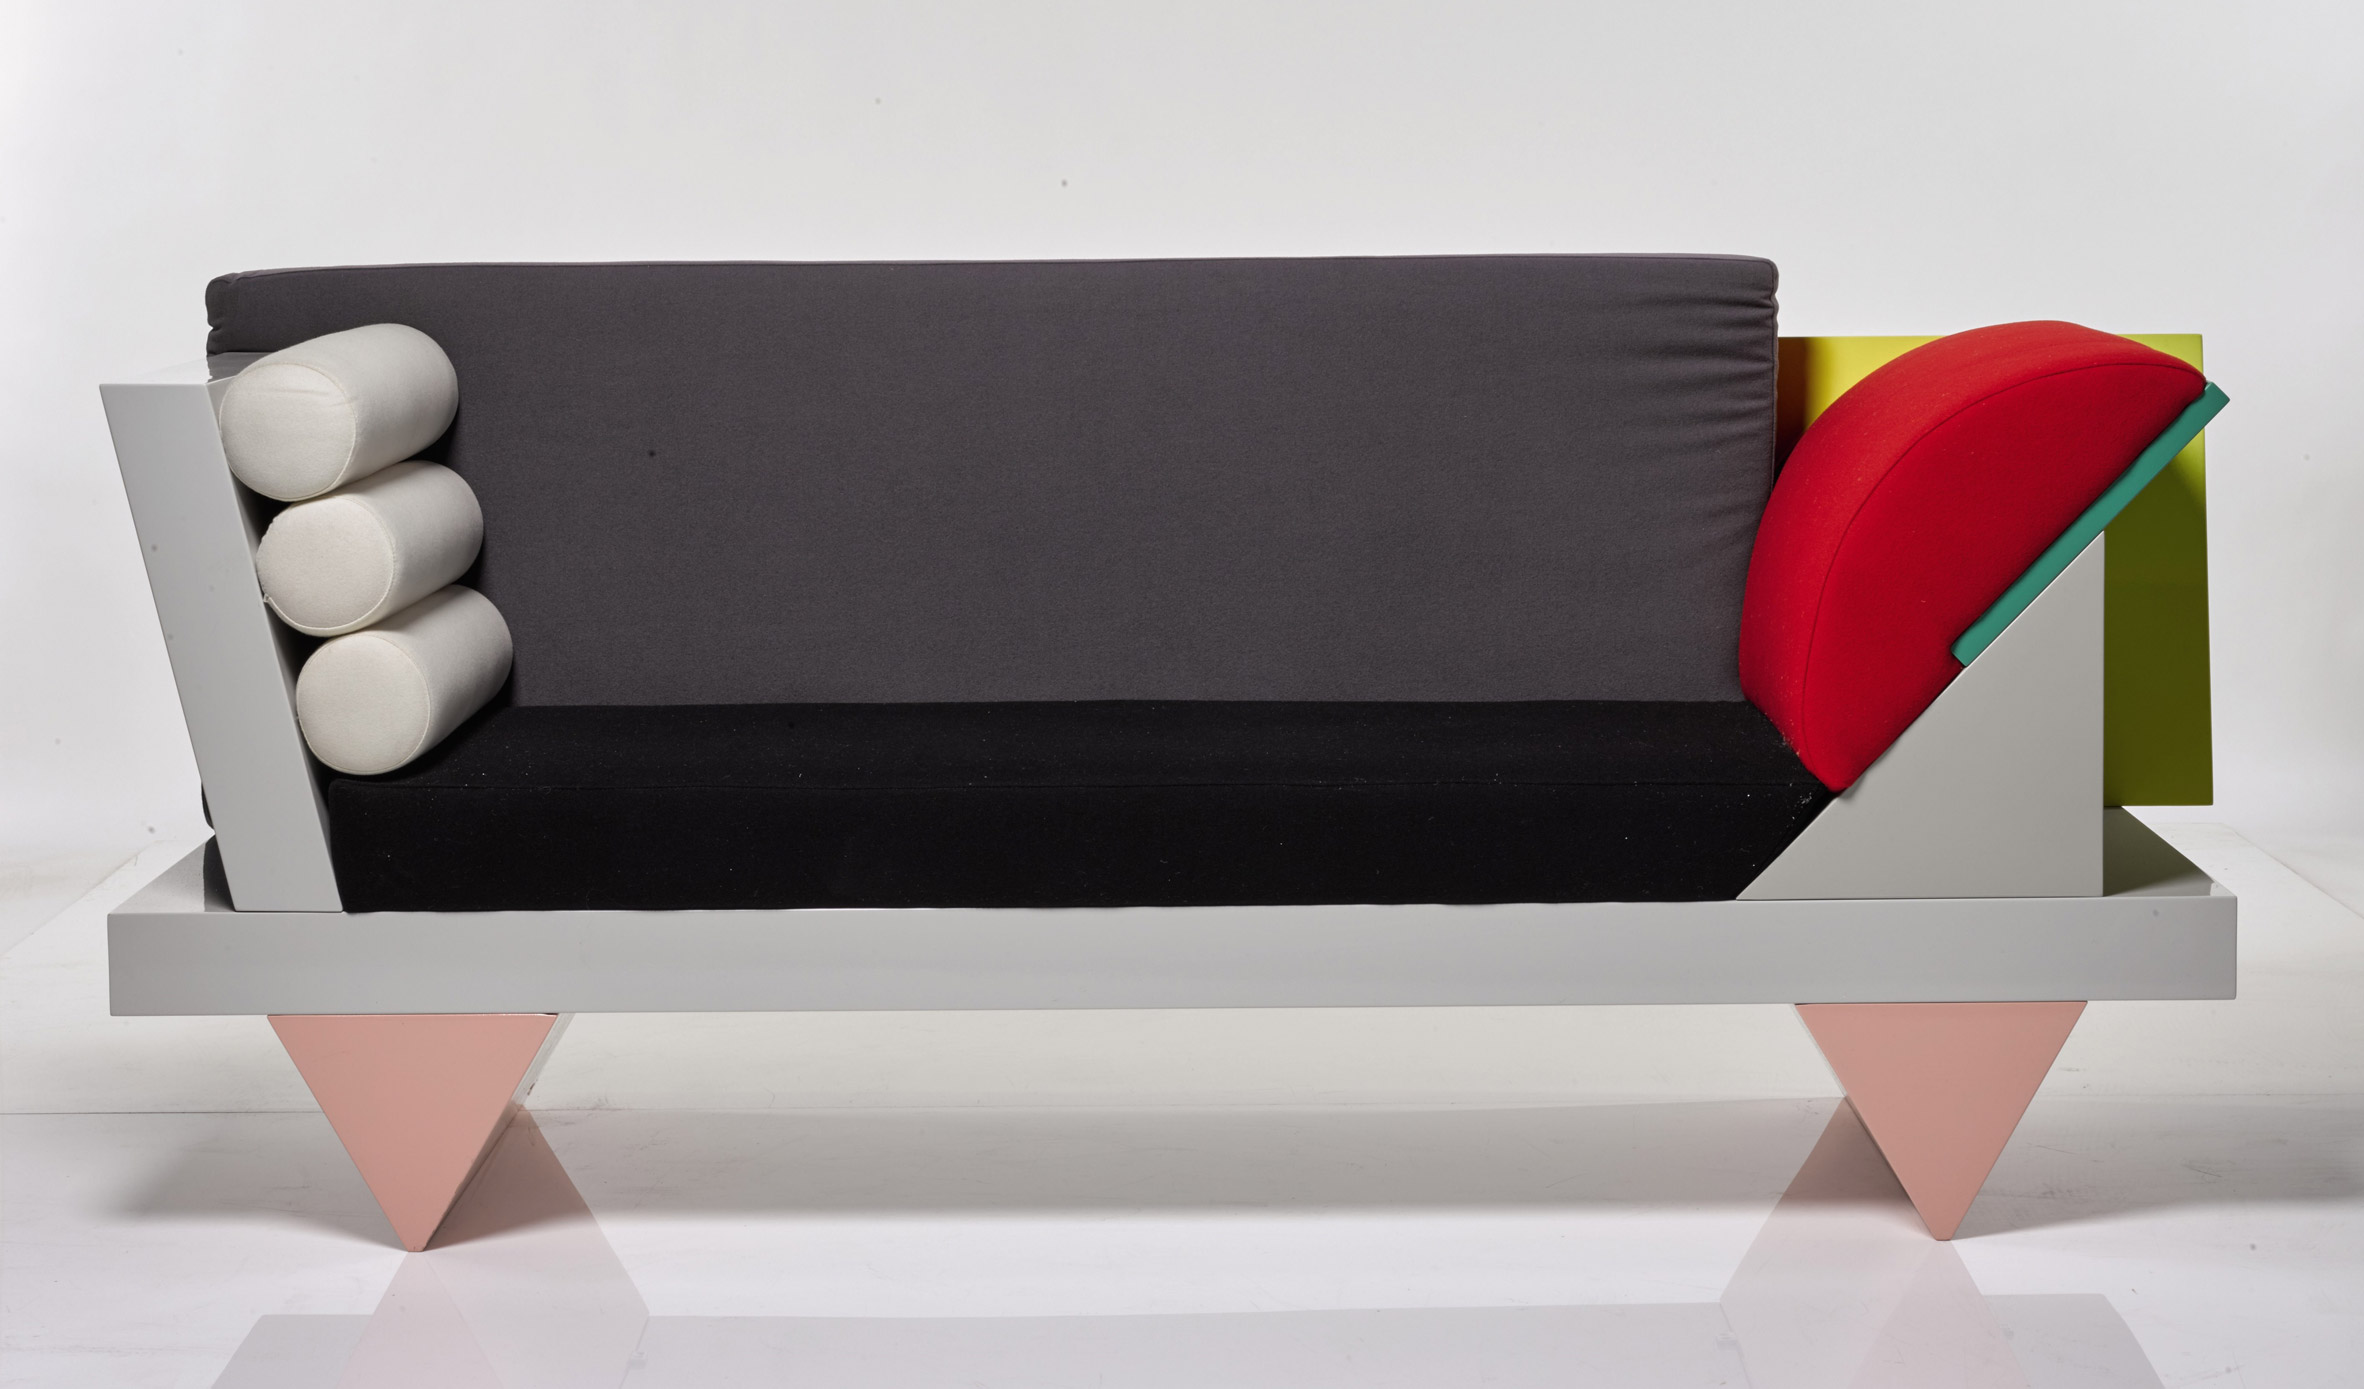 David Bowie's Memphis style couch